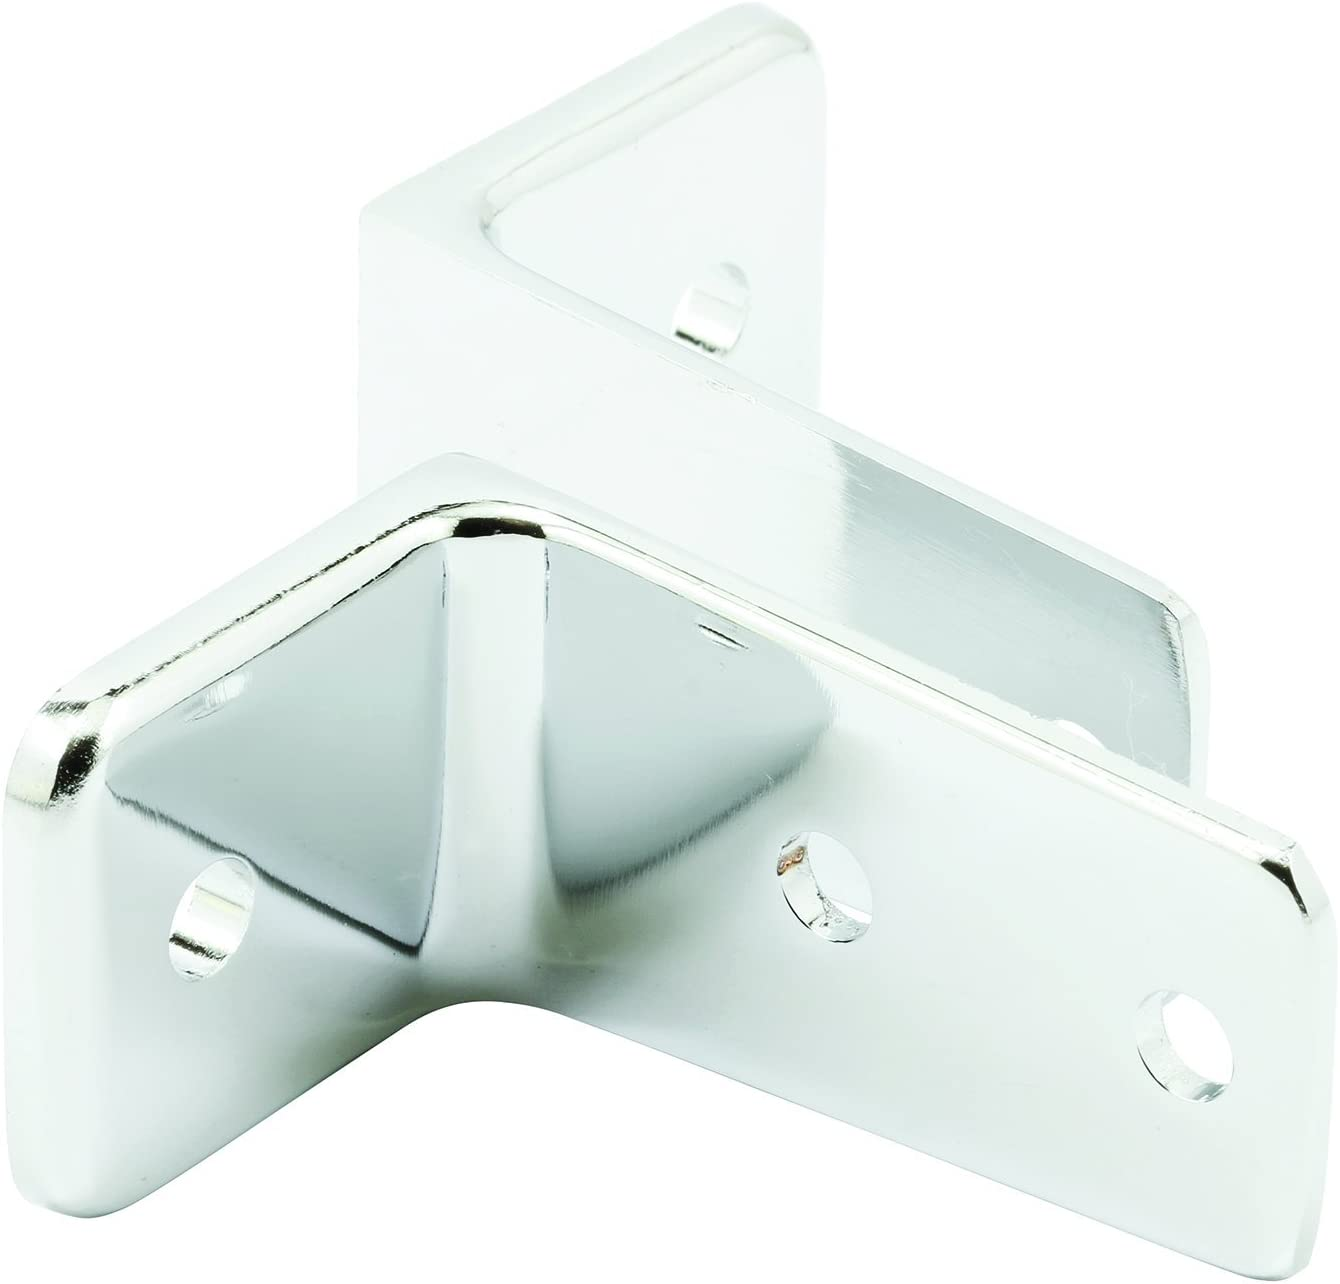 Sentry Supply 650-6437 Two Piece Wall Bracket, 2-1/2 inches in length, Double Hole, Chrome Plated Zamak, Pack of 2